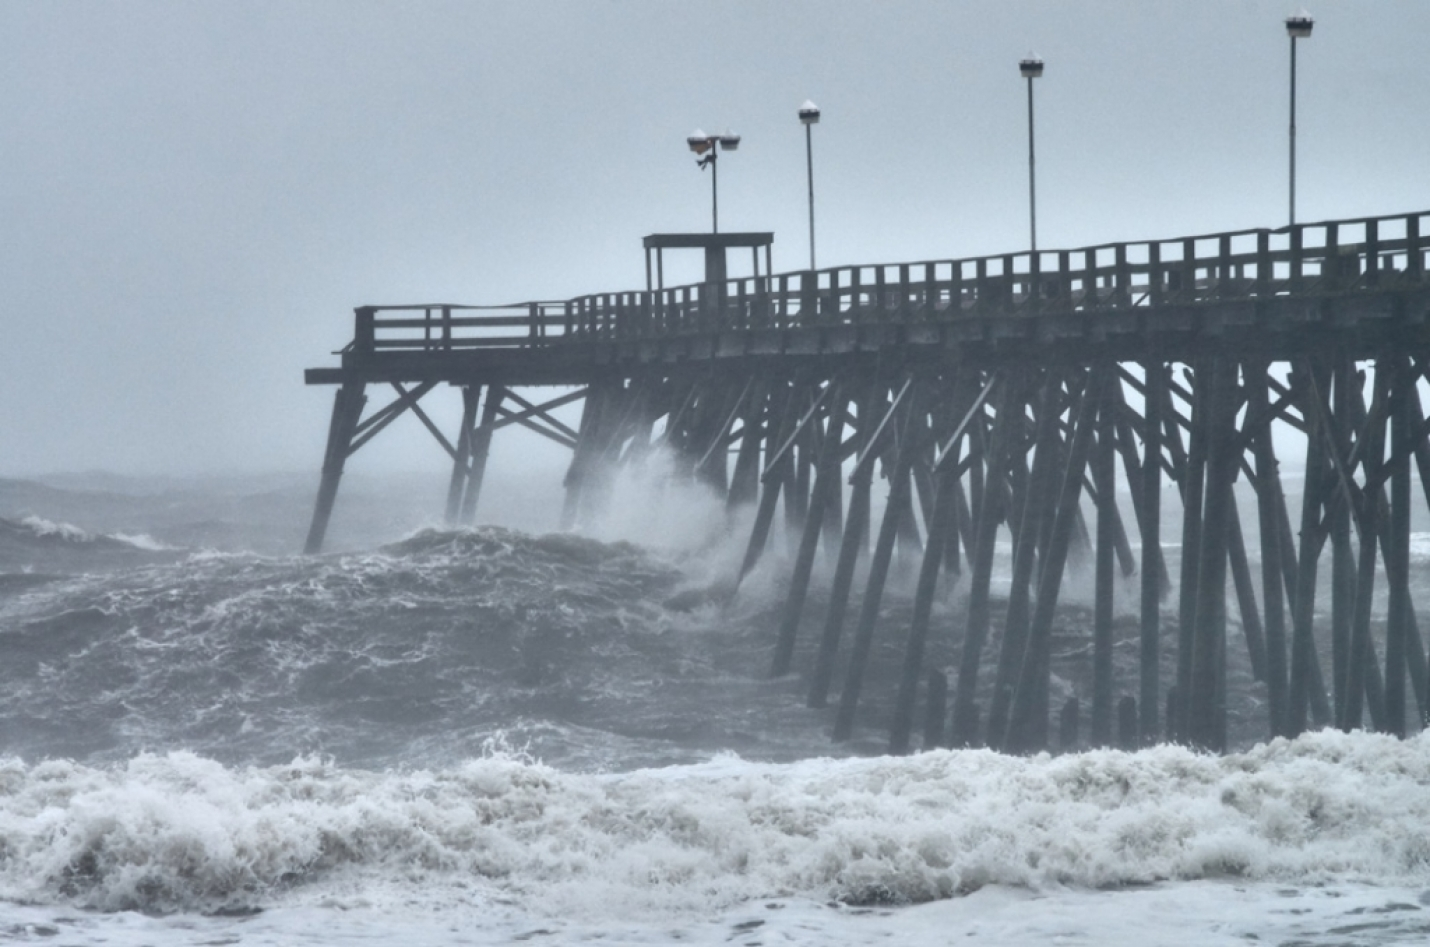 Hurricane Matthew caused beach erosion, power outages and fallen trees on October 8th and 9th, 2016 in the Cape Fear Region. Portions of Canal Drive and Myrtle Avenue in Carolina Beach were flooded by tides combined with a storm surge during. Areas farther inland such as Fayetteville, NC, received nearly 15 inches of rain within a 24 hour period. Pictured Above: The Kure Beach Pier suffered minor damage and was reopened the next day.